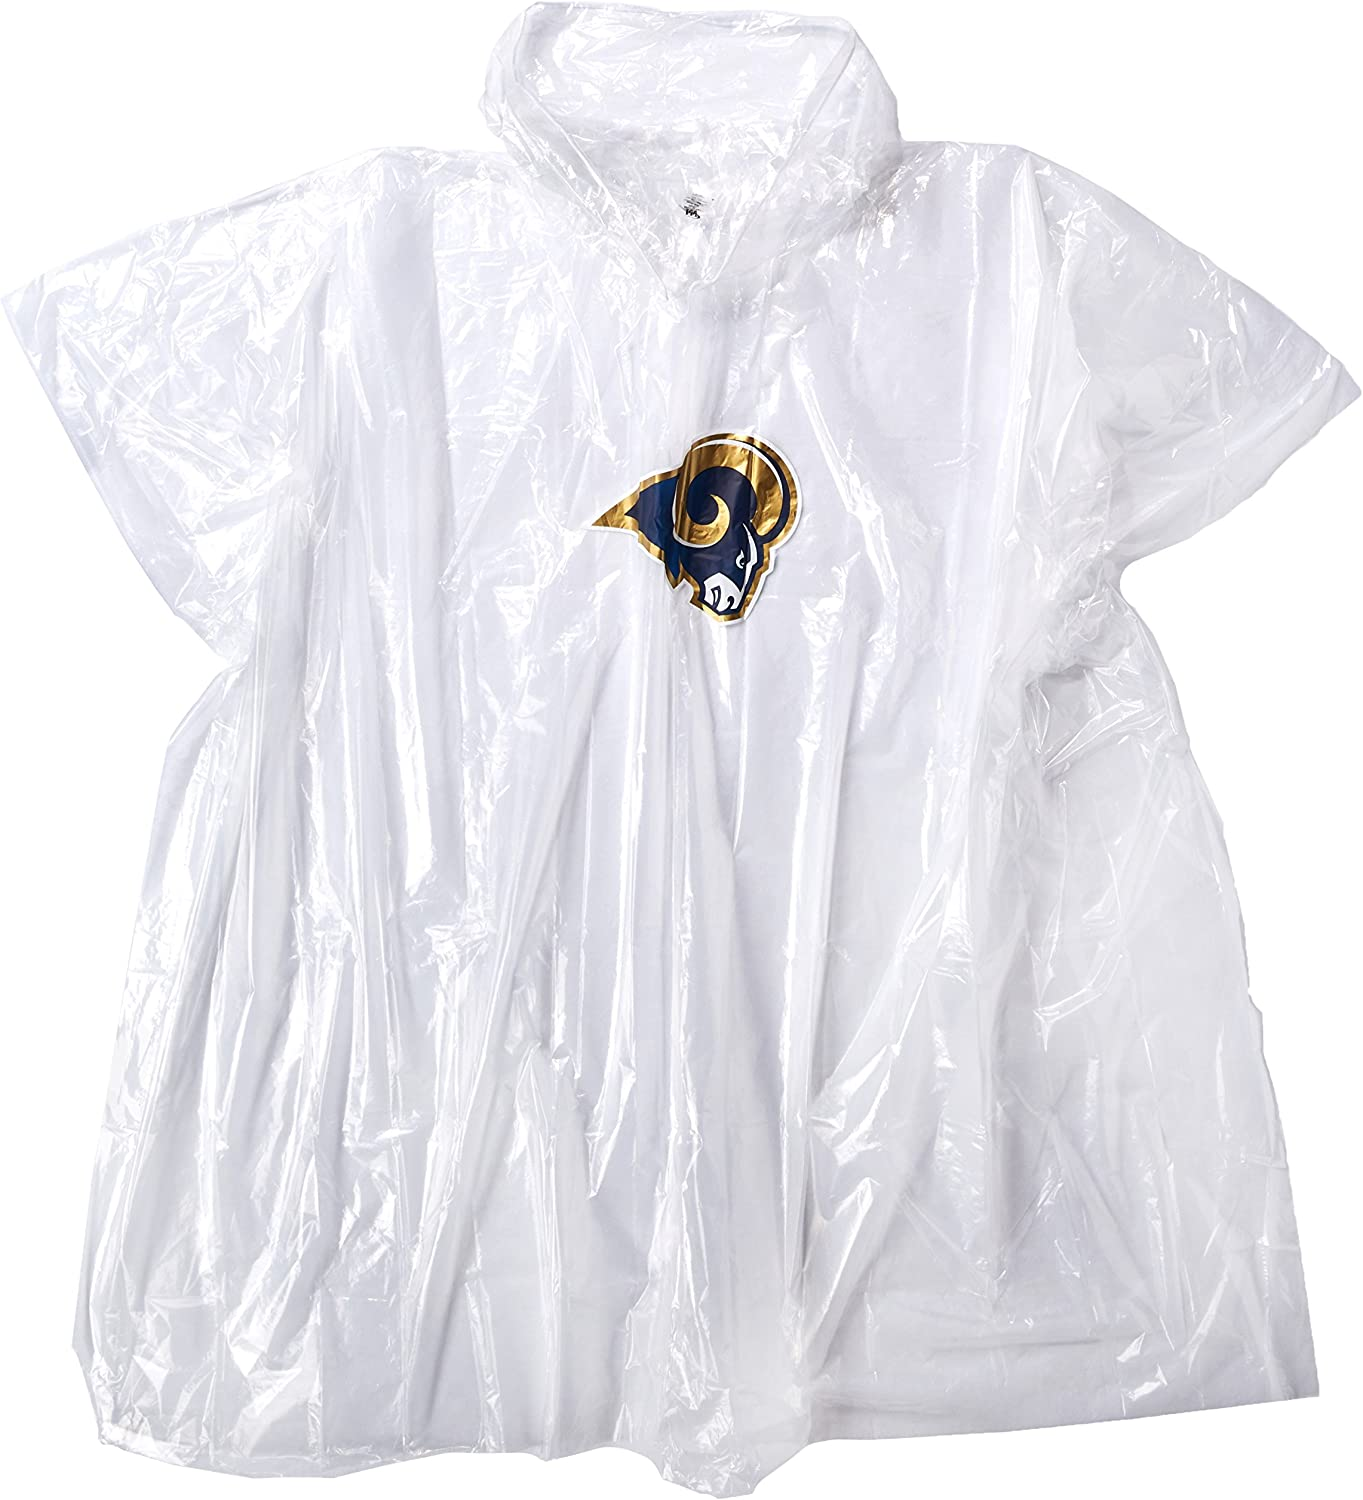 44 x 49 NFL Los Angeles Rams Lightweight Poncho